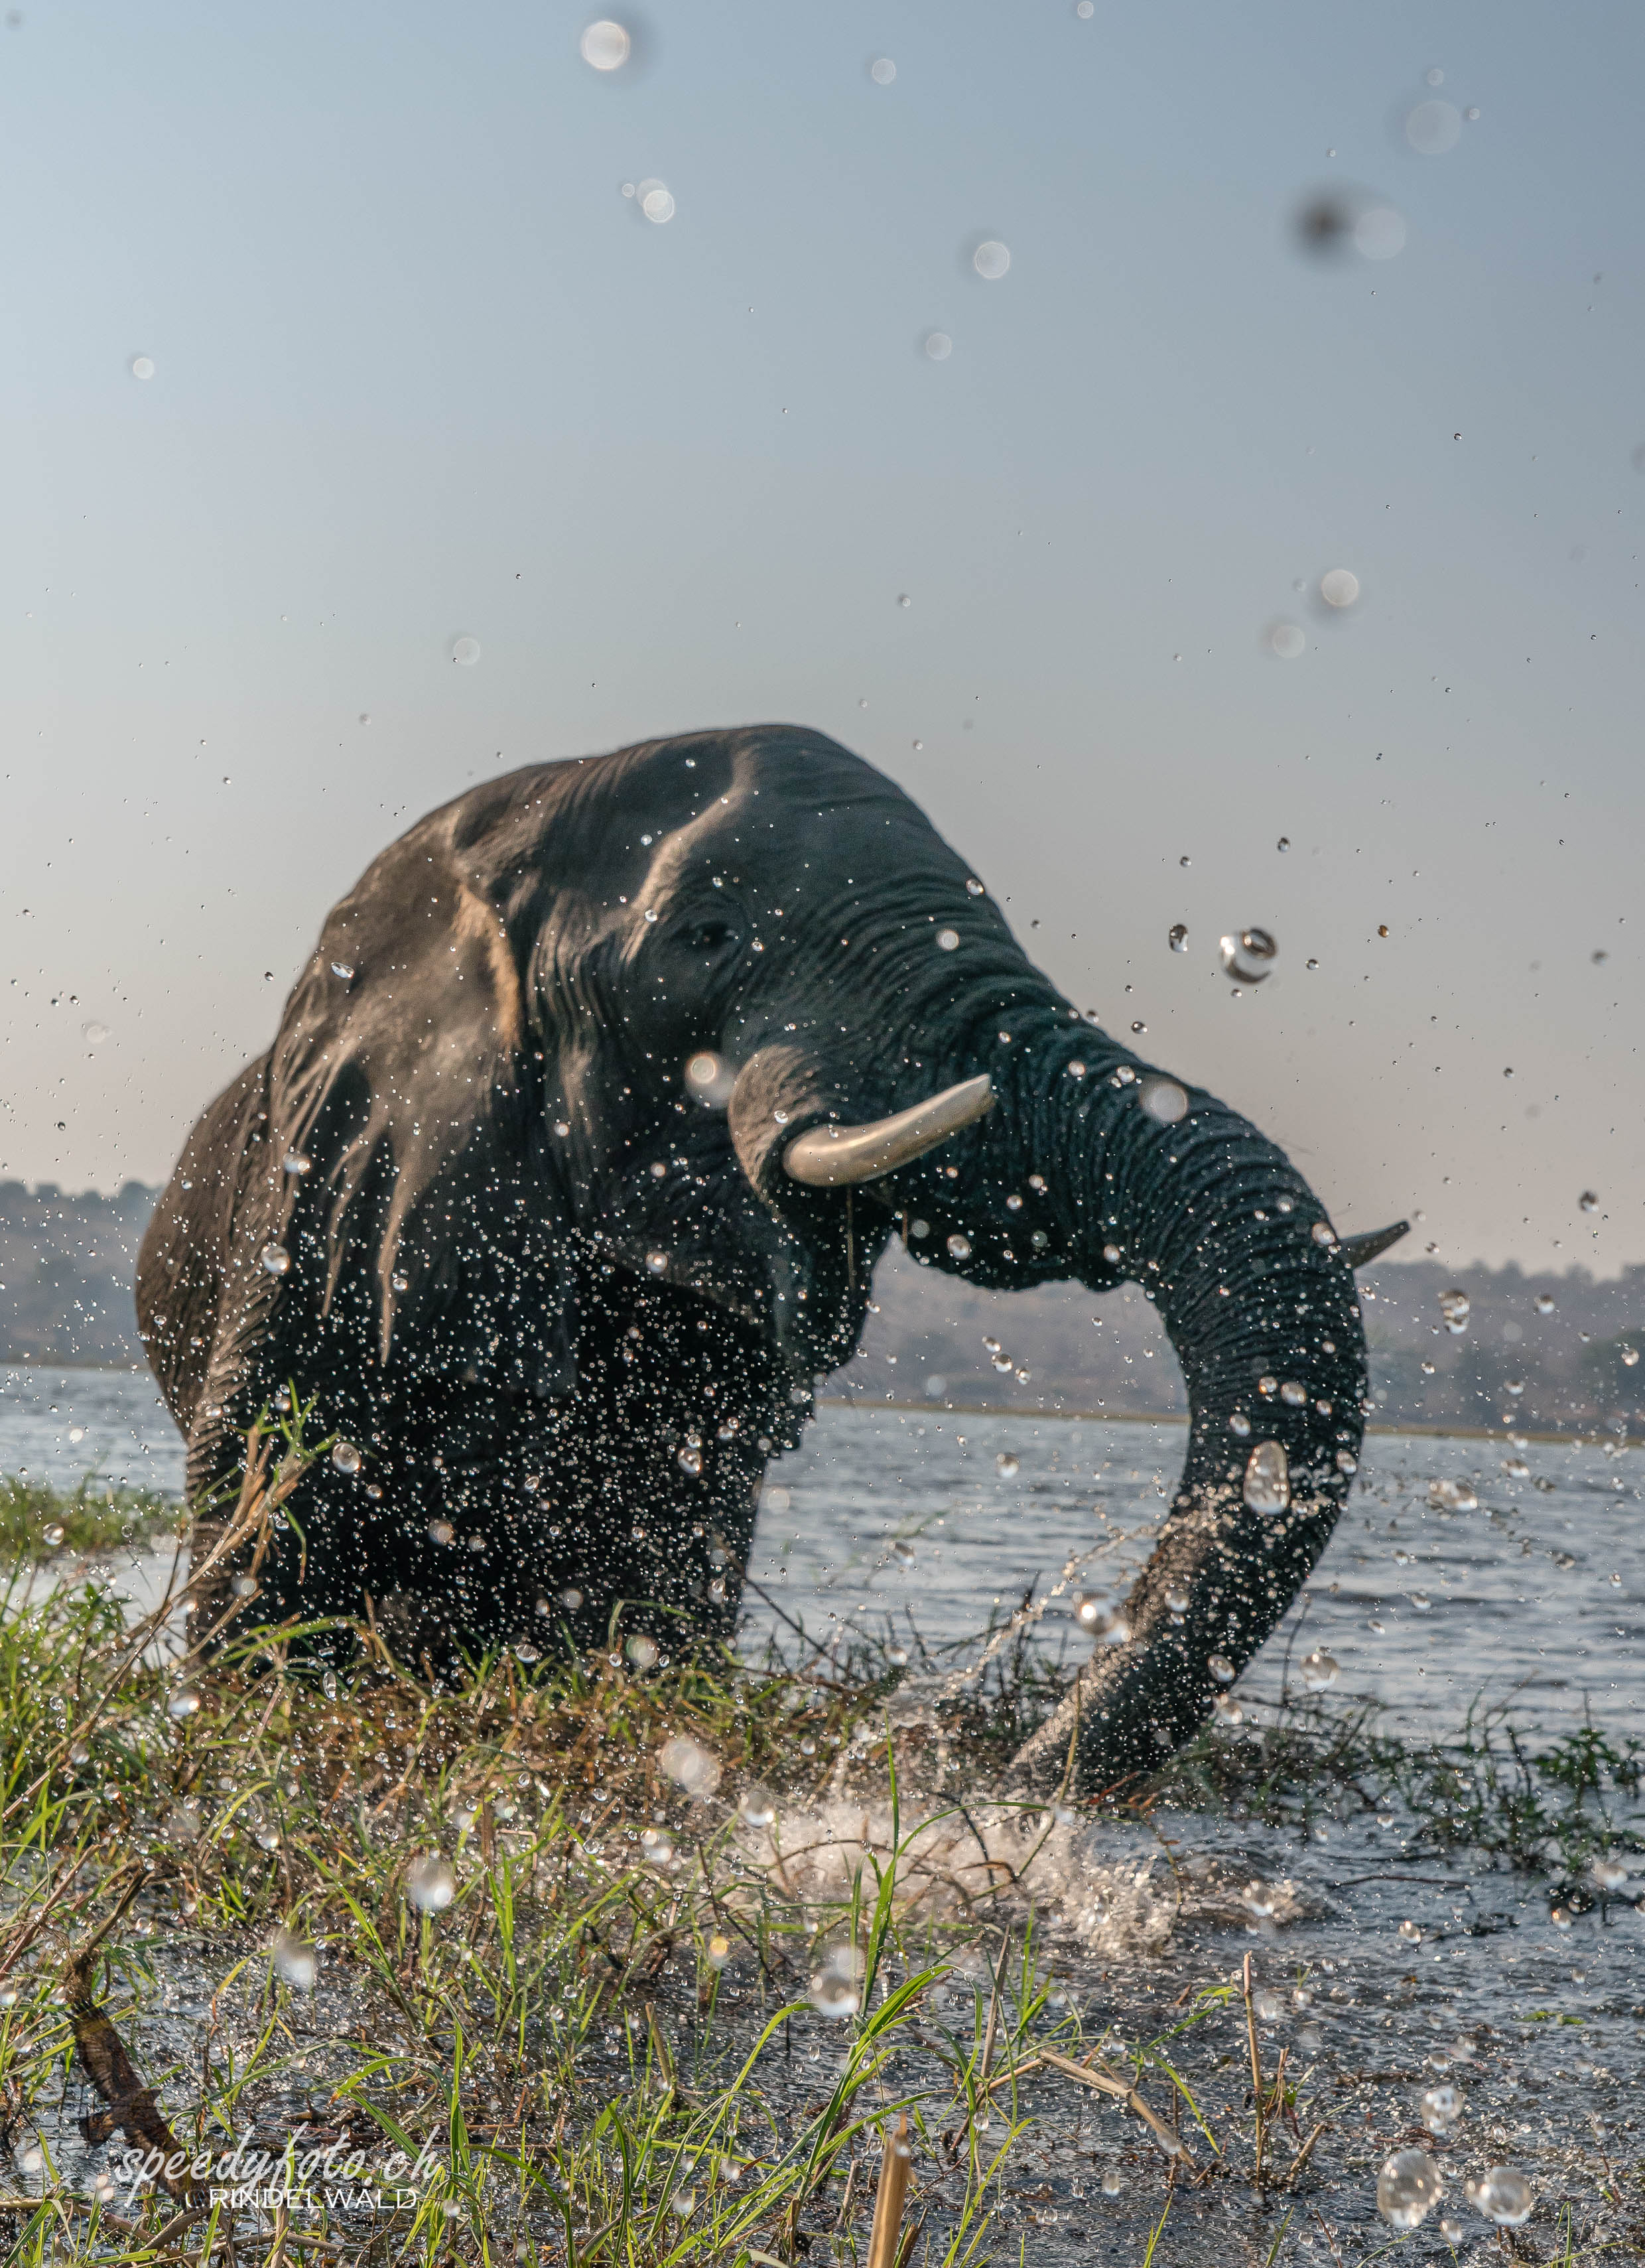 Splashing Elefant